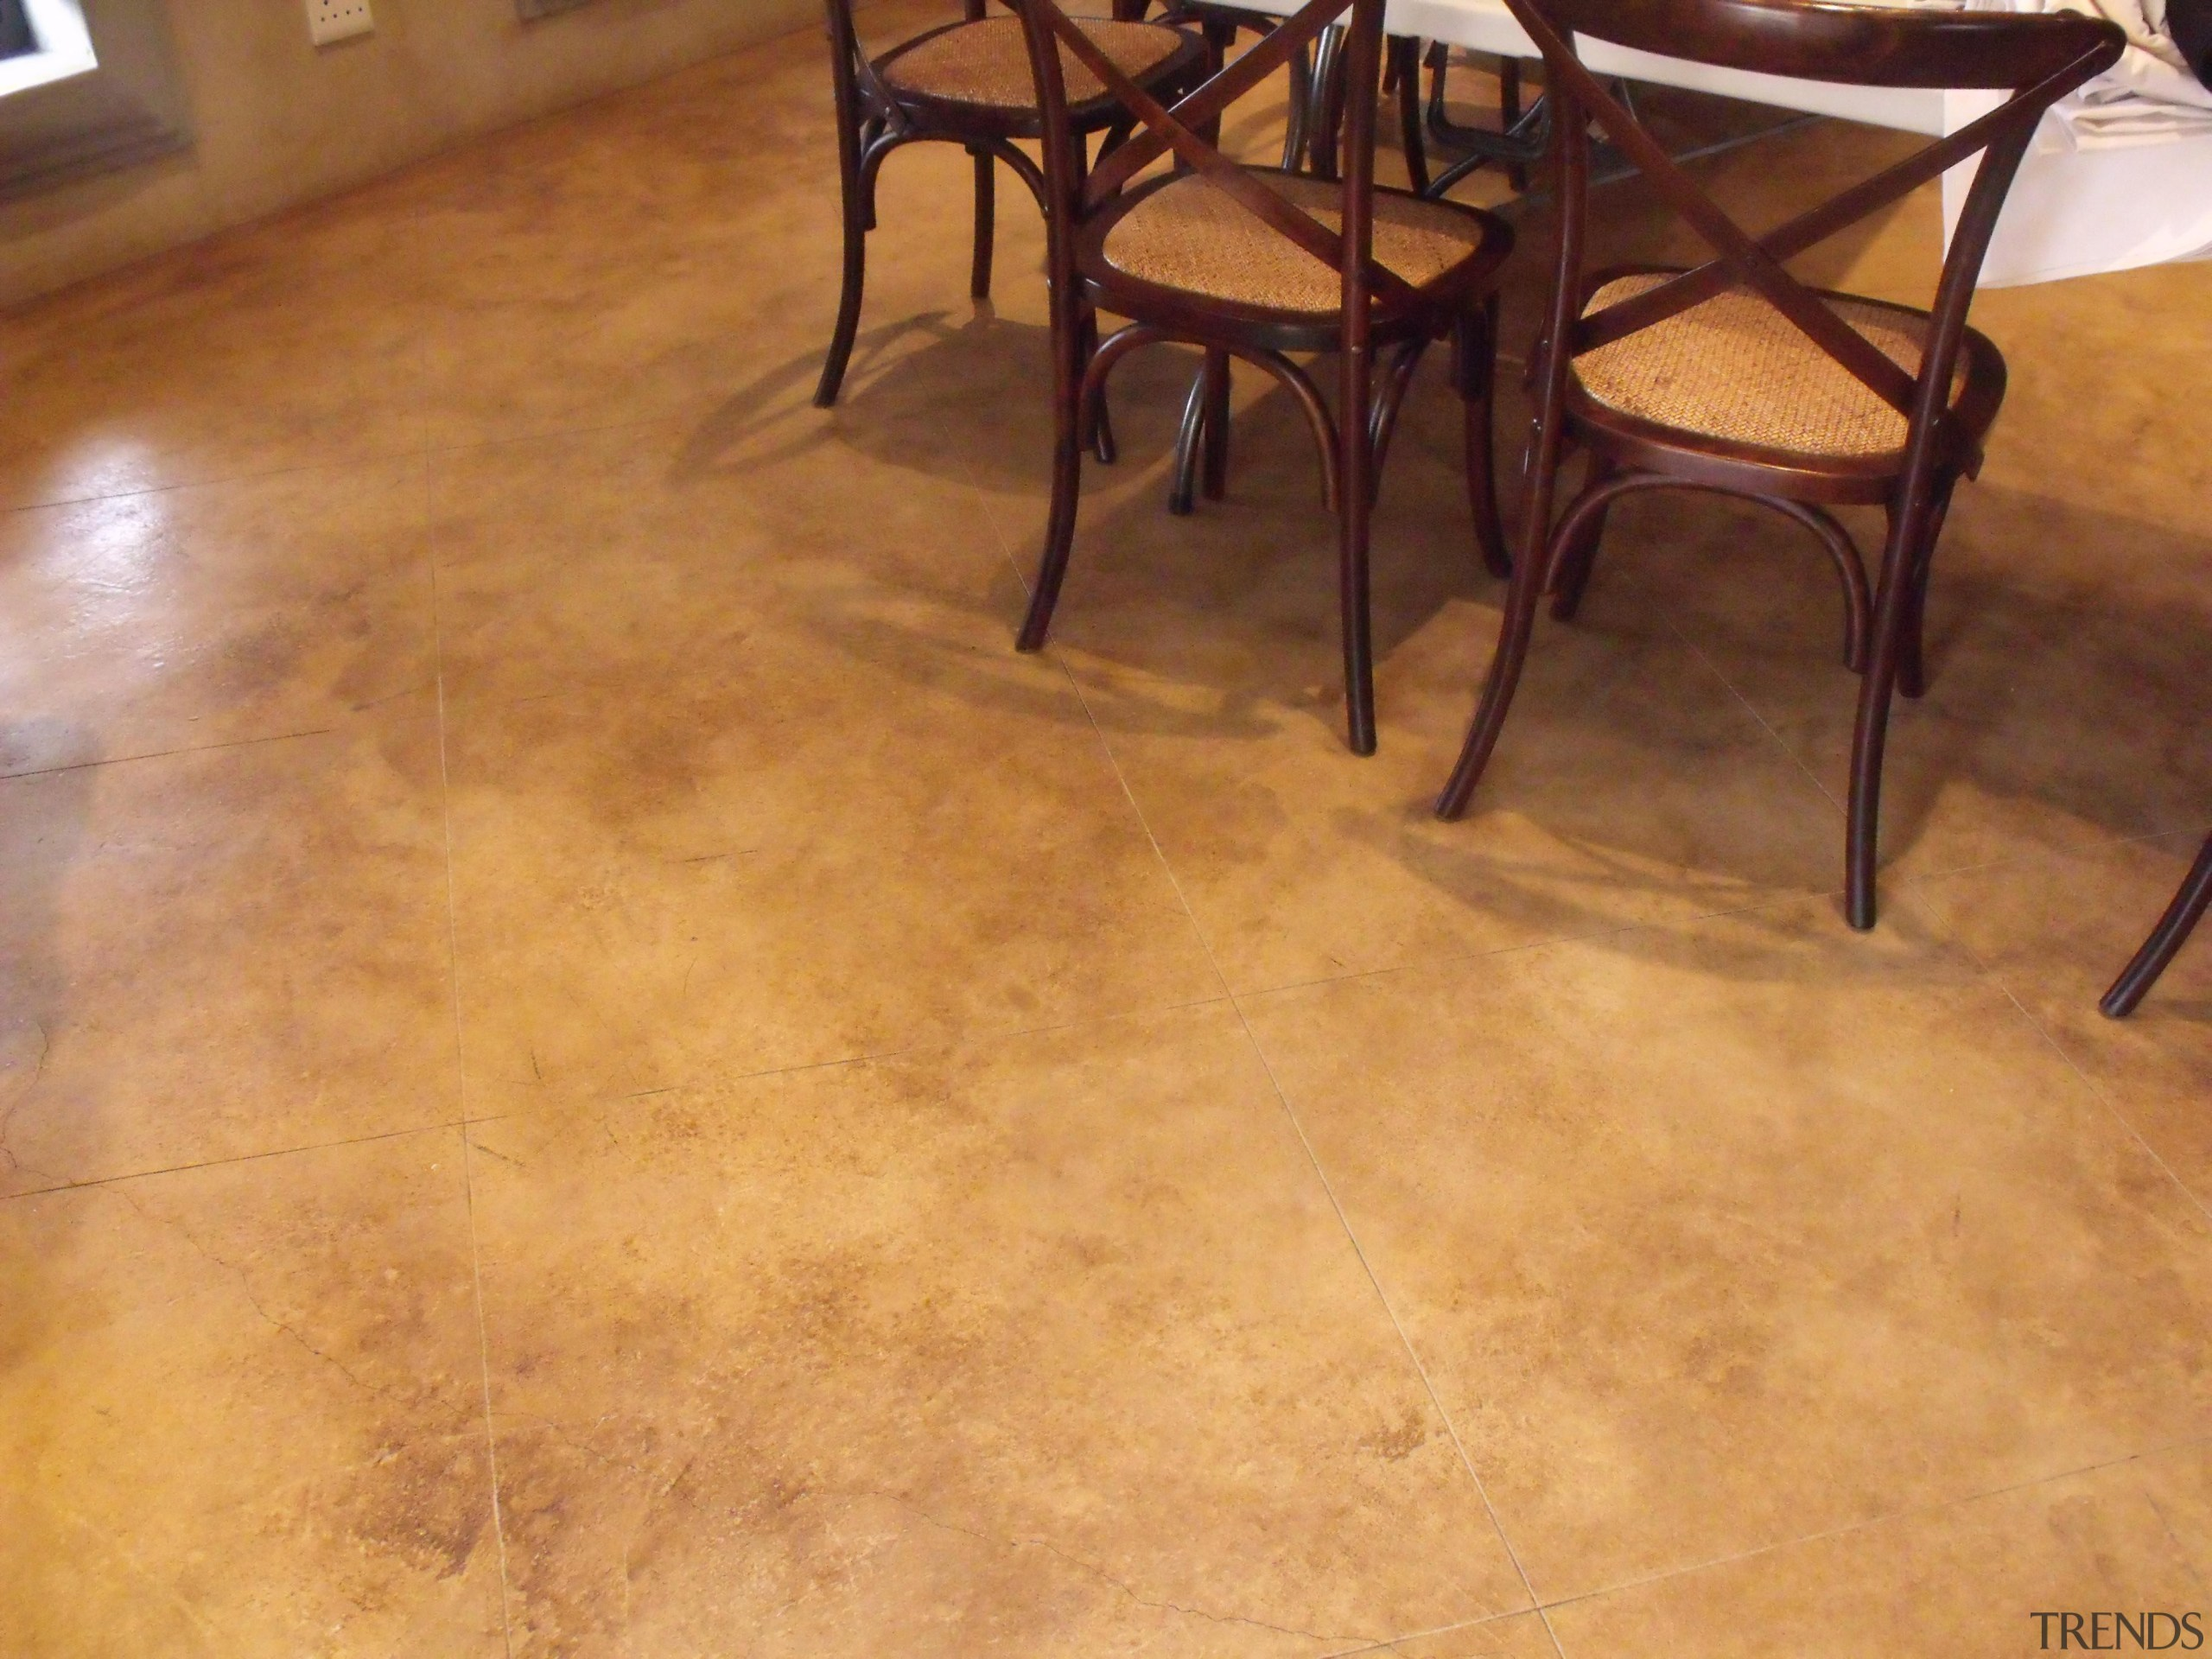 Chemical stain 4 - Chemical_stain_4 - floor | floor, flooring, hardwood, laminate flooring, table, tile, wood, wood flooring, wood stain, orange